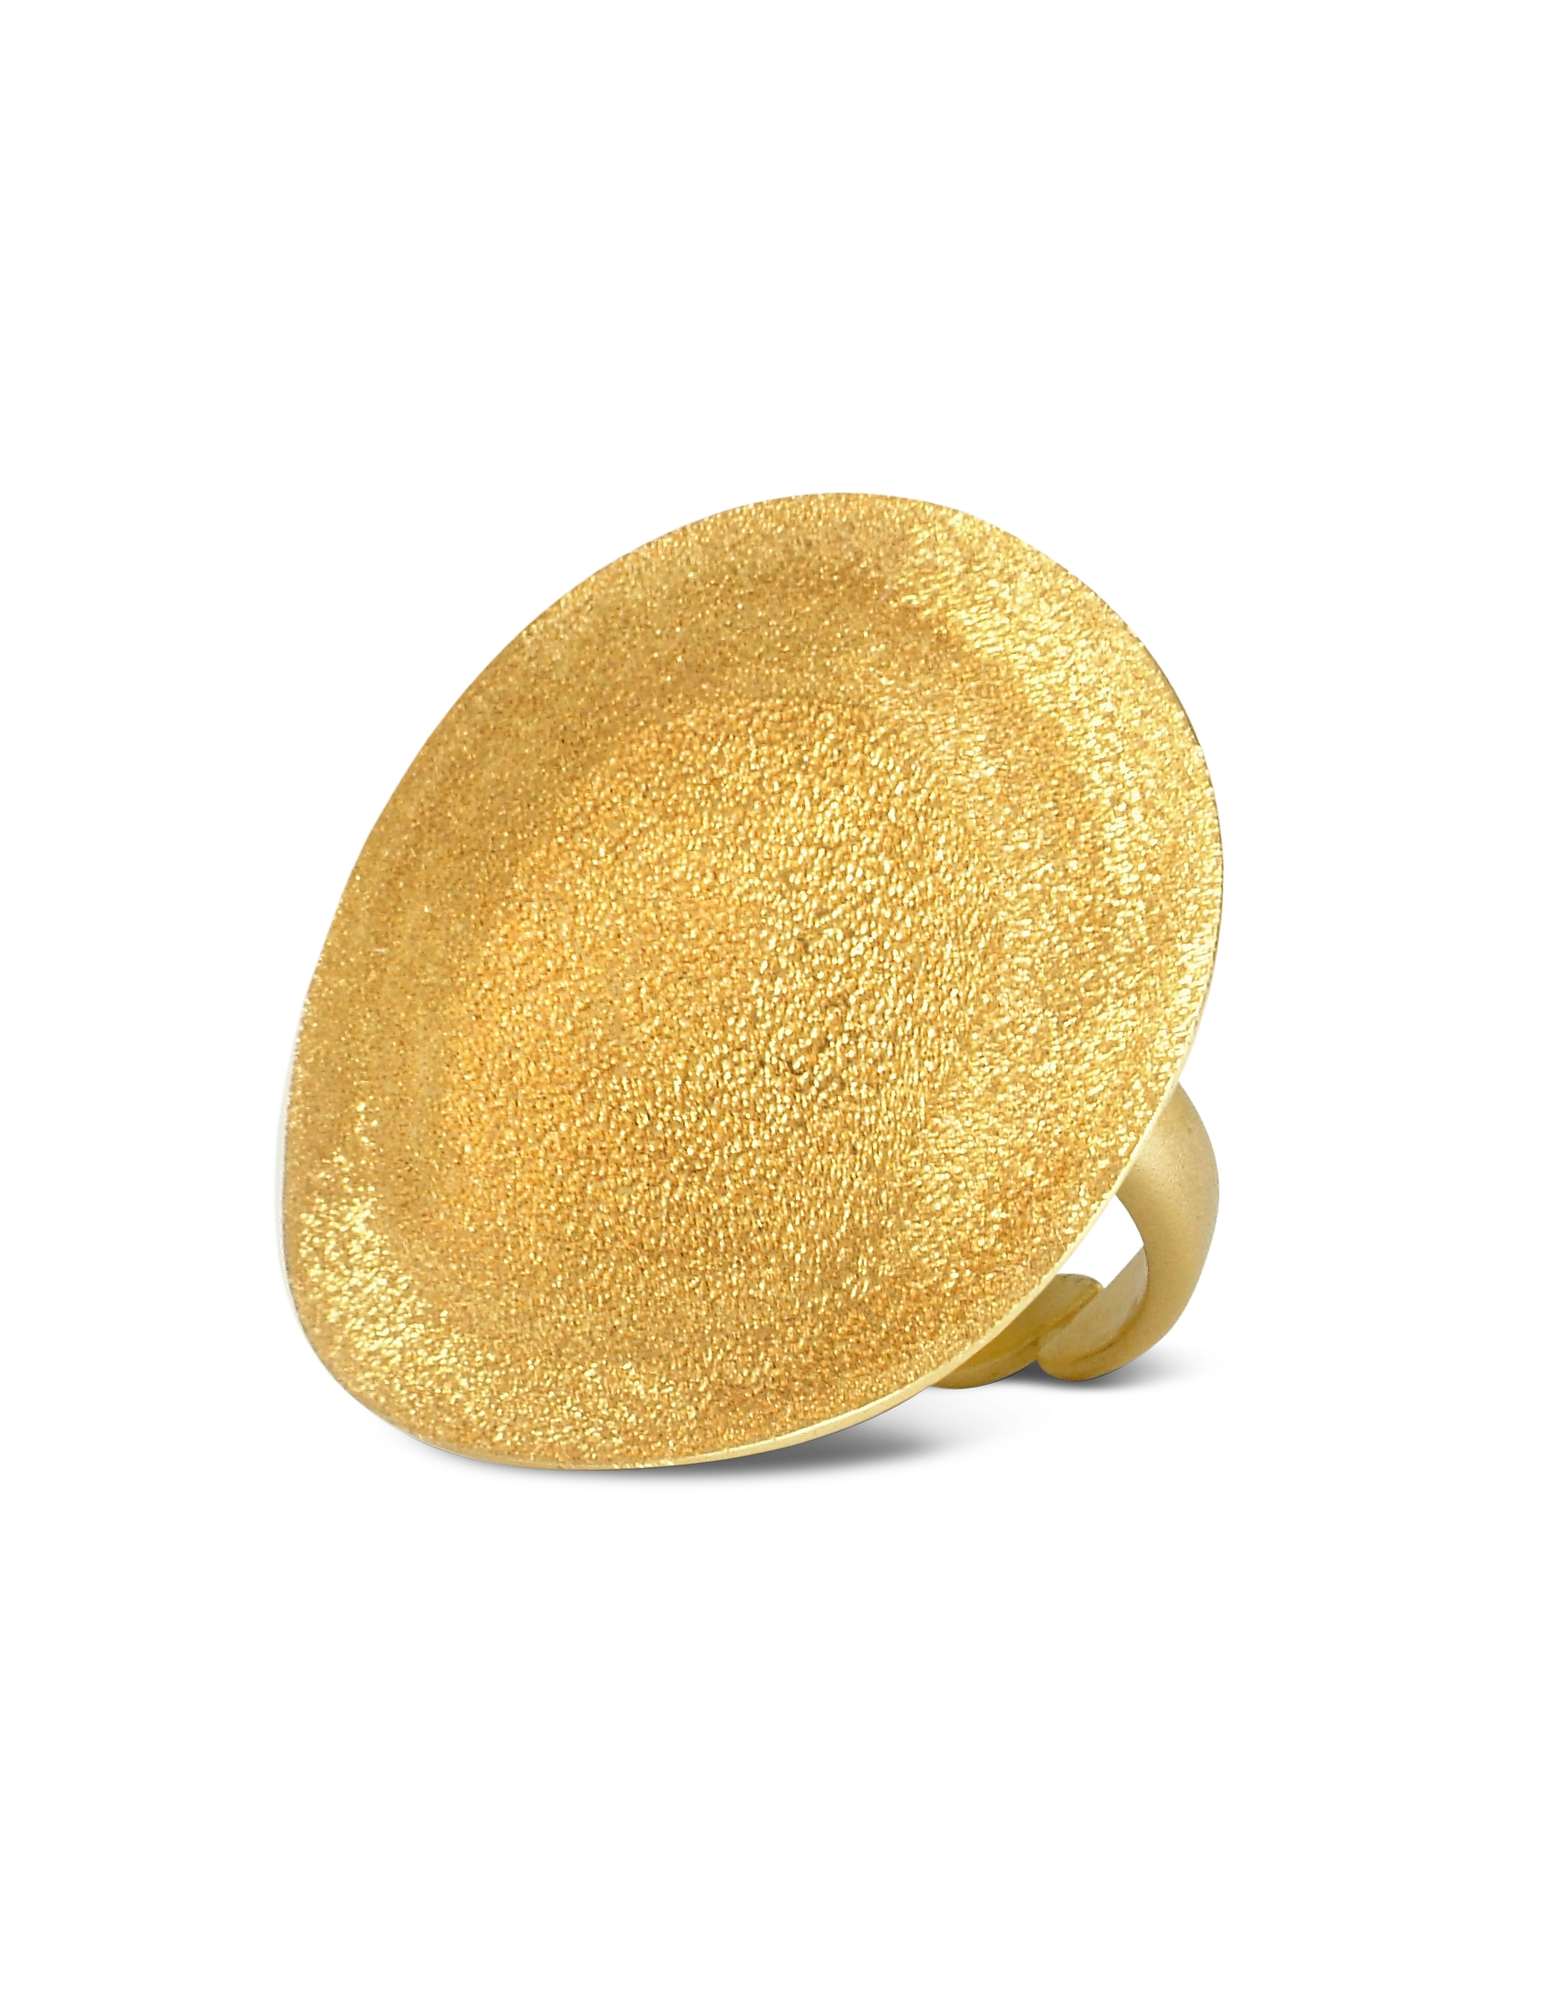 Stefano Patriarchi Rings, Golden Silver Etched Round Ring